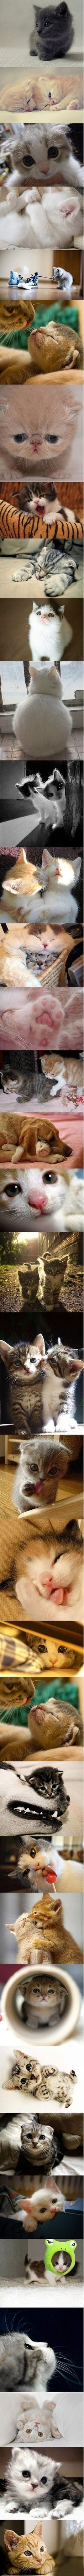 Too many cute kittens - I want them all!